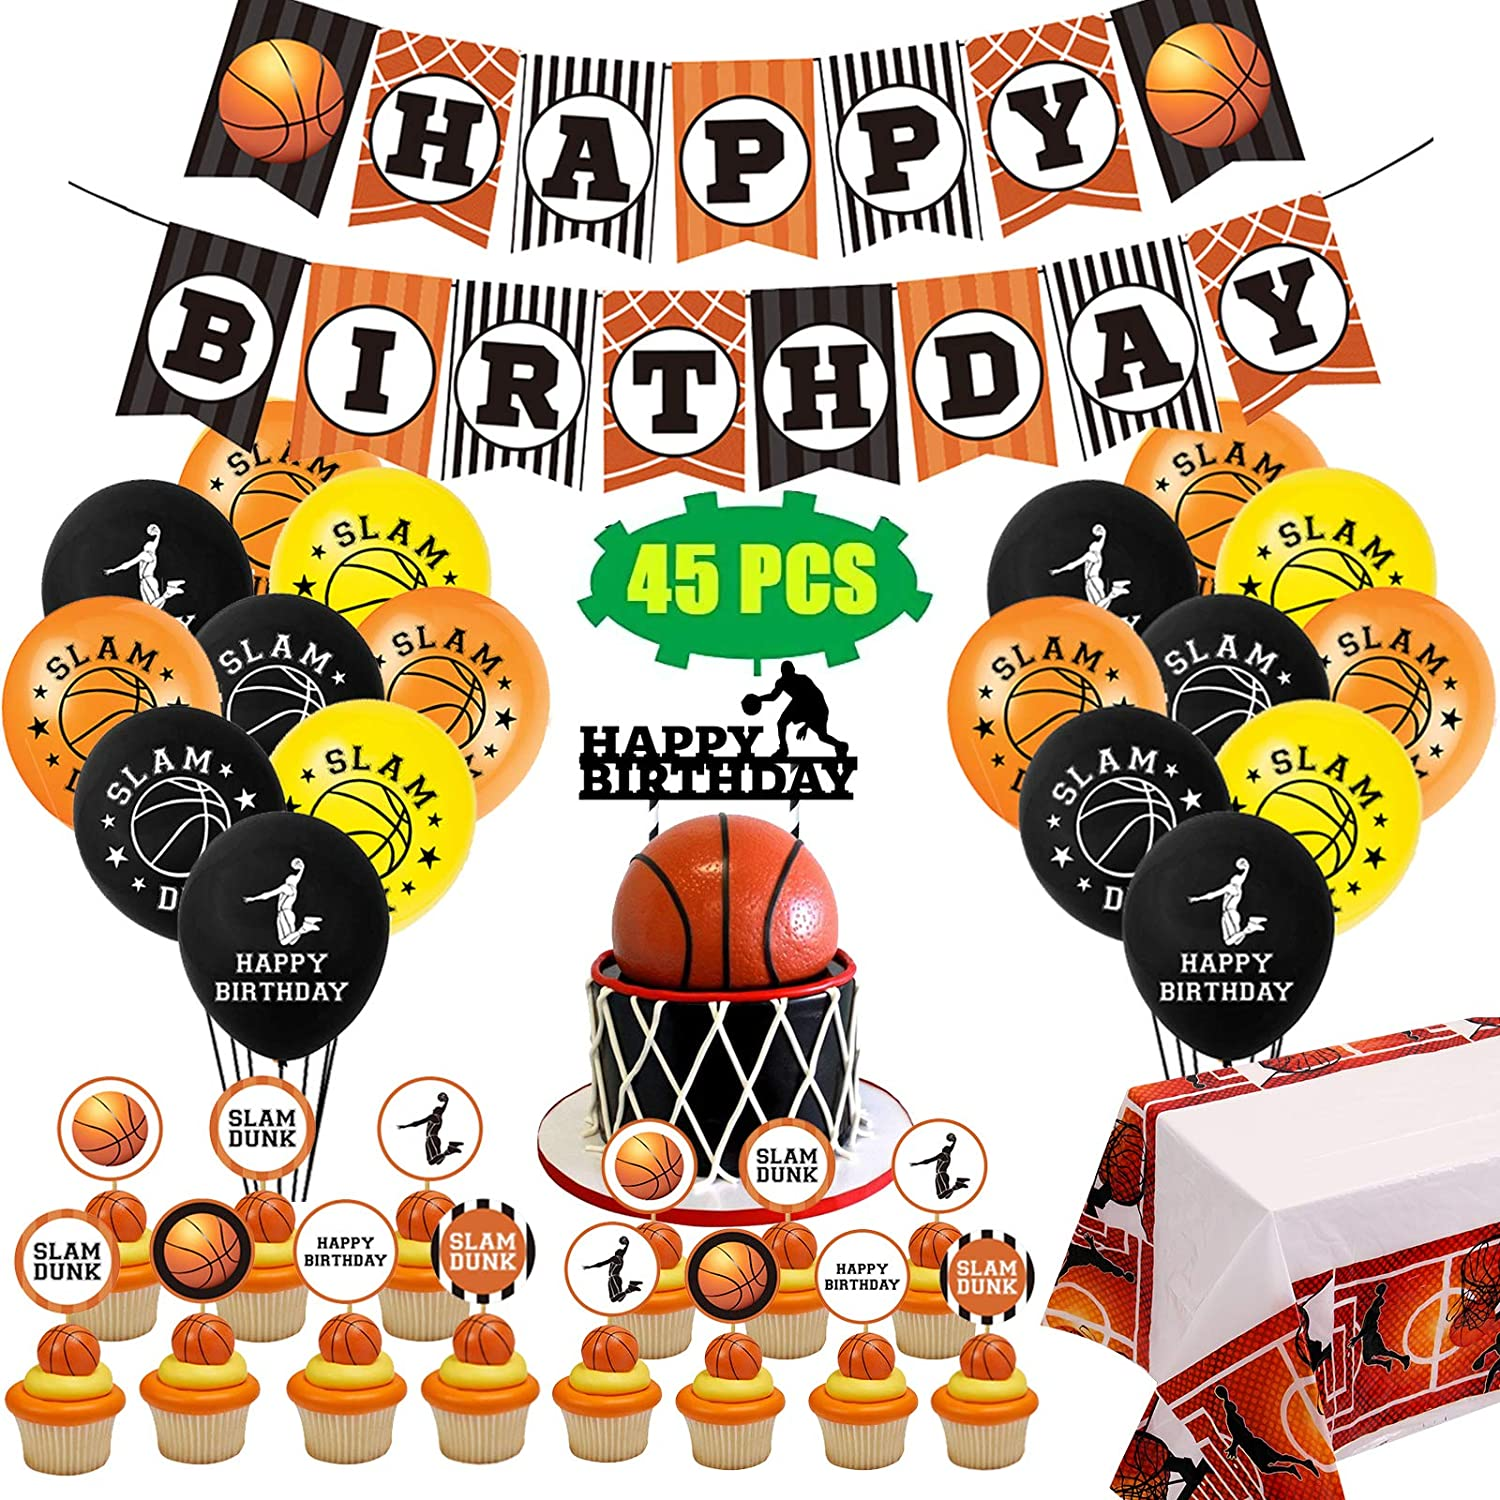 Basketball Party Decorations Supplies, Sports Theme Birthday Party Decor with Banner, Balloons, KB Cupcake Toppers, Table Cover, Slam Dunk for Kids, Baby Shower, Boys, Girls, Teenagers 45pcs